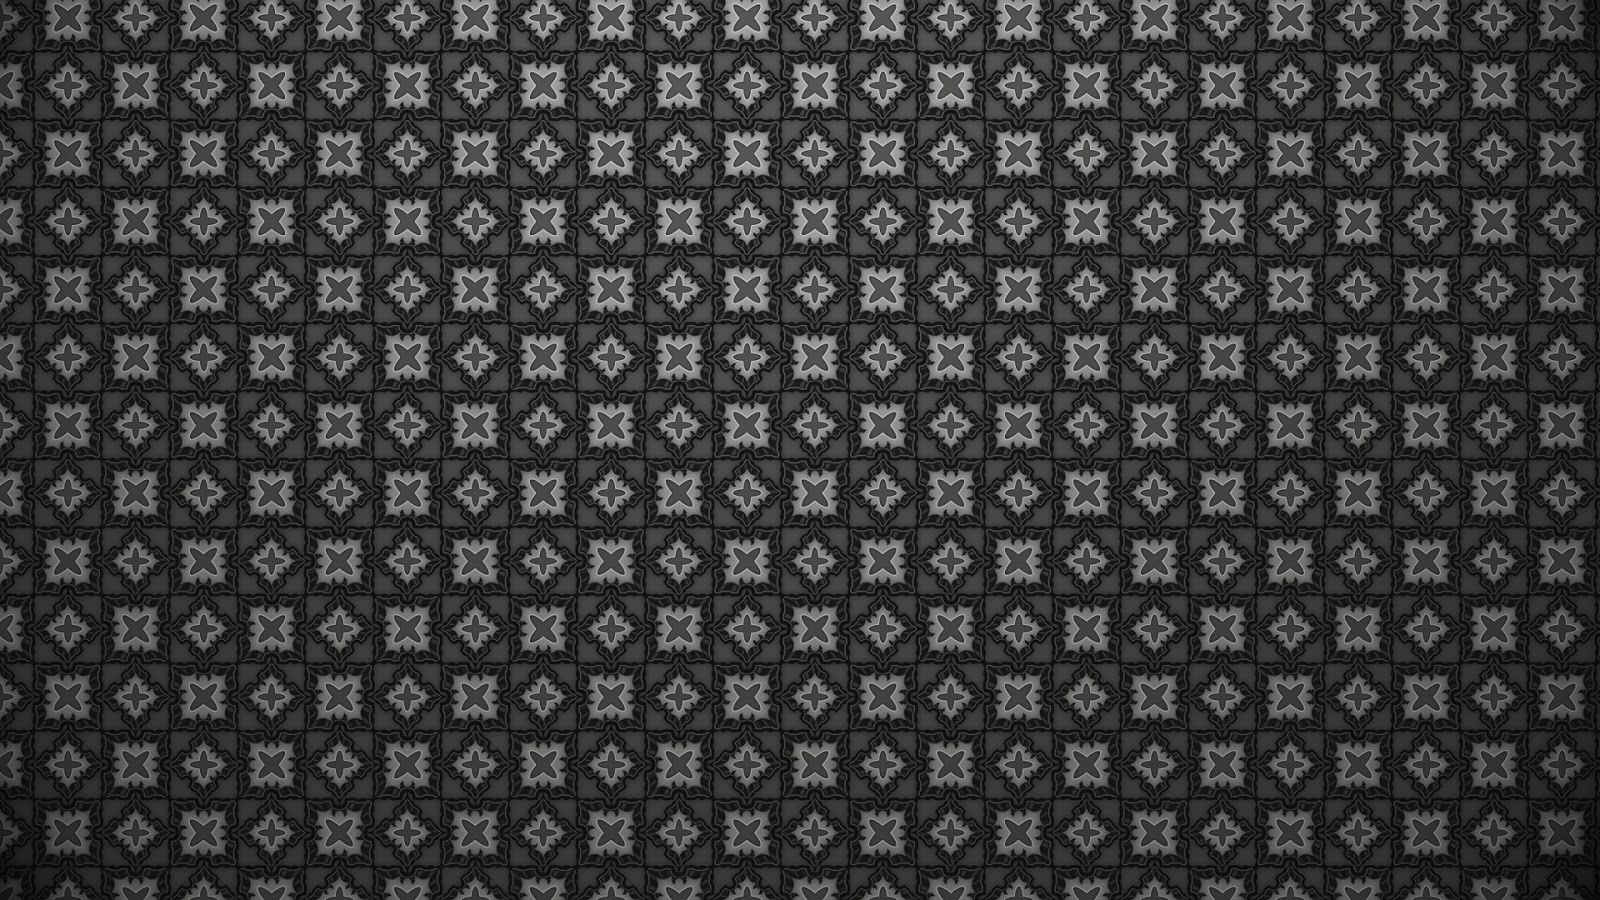 Dark-BG-star-tiles-small-texture-HD-background-pictures-for-websites.jpg